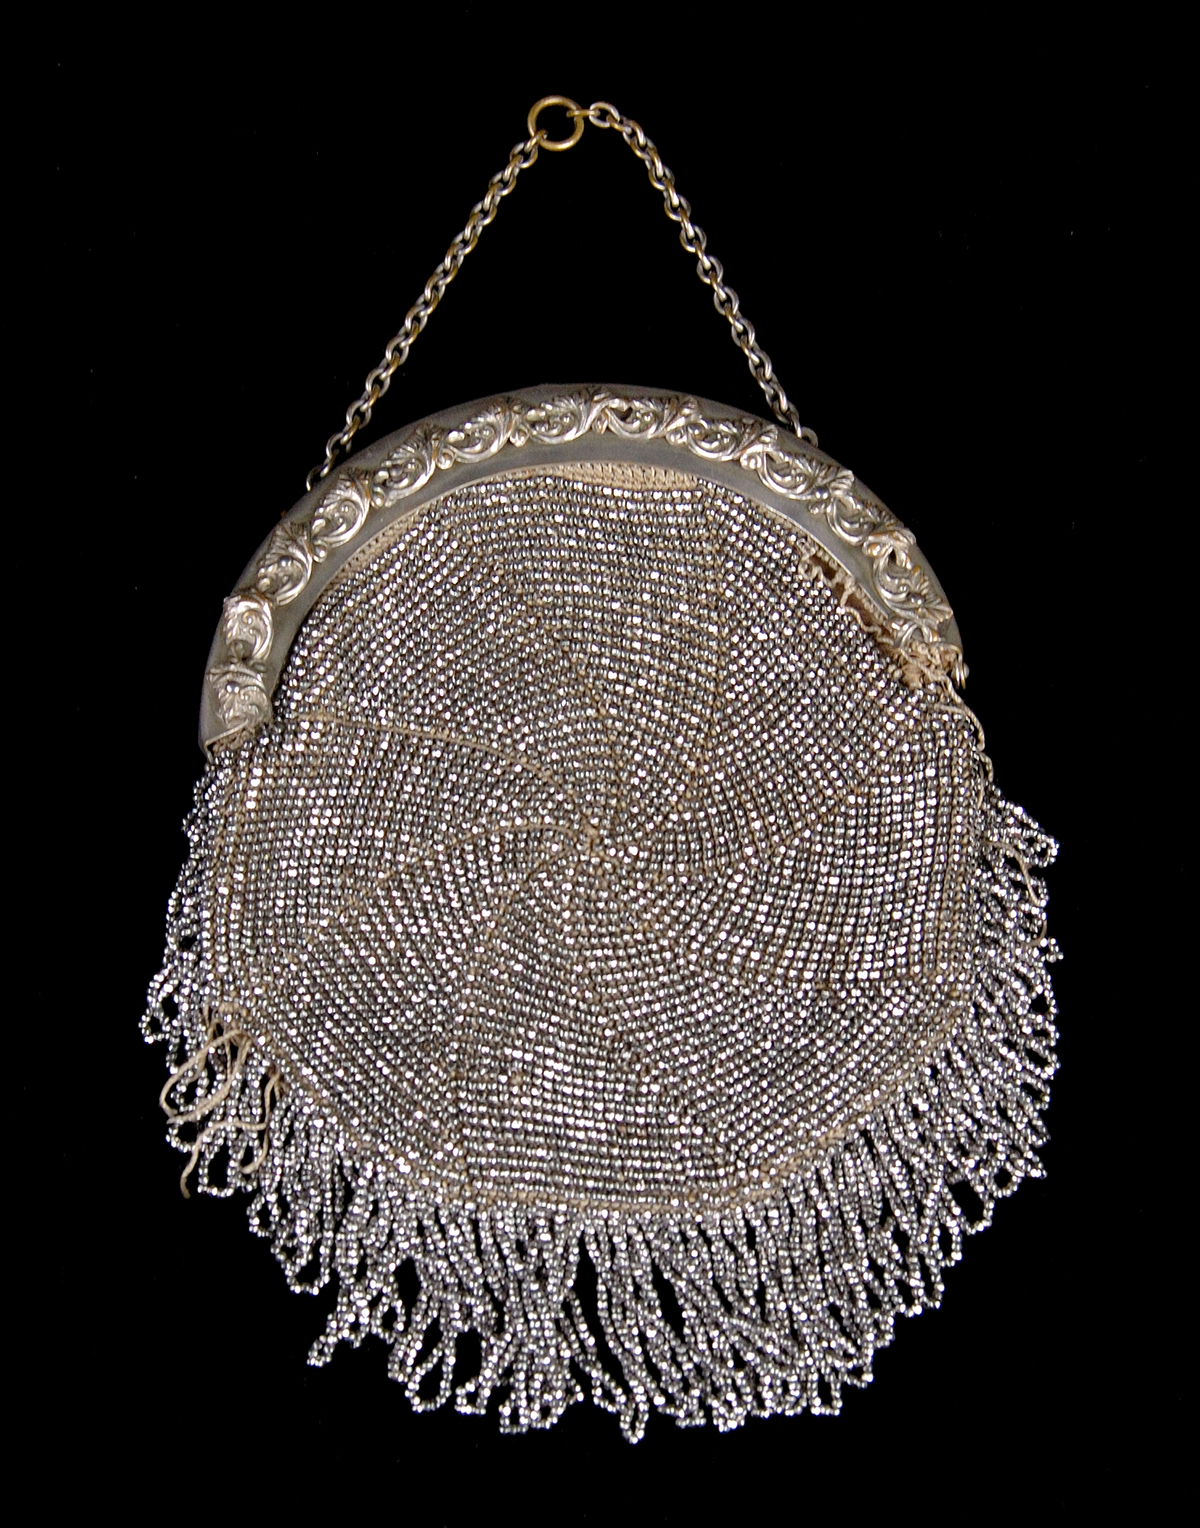 1850. European. Metal, cotton. metmuseum